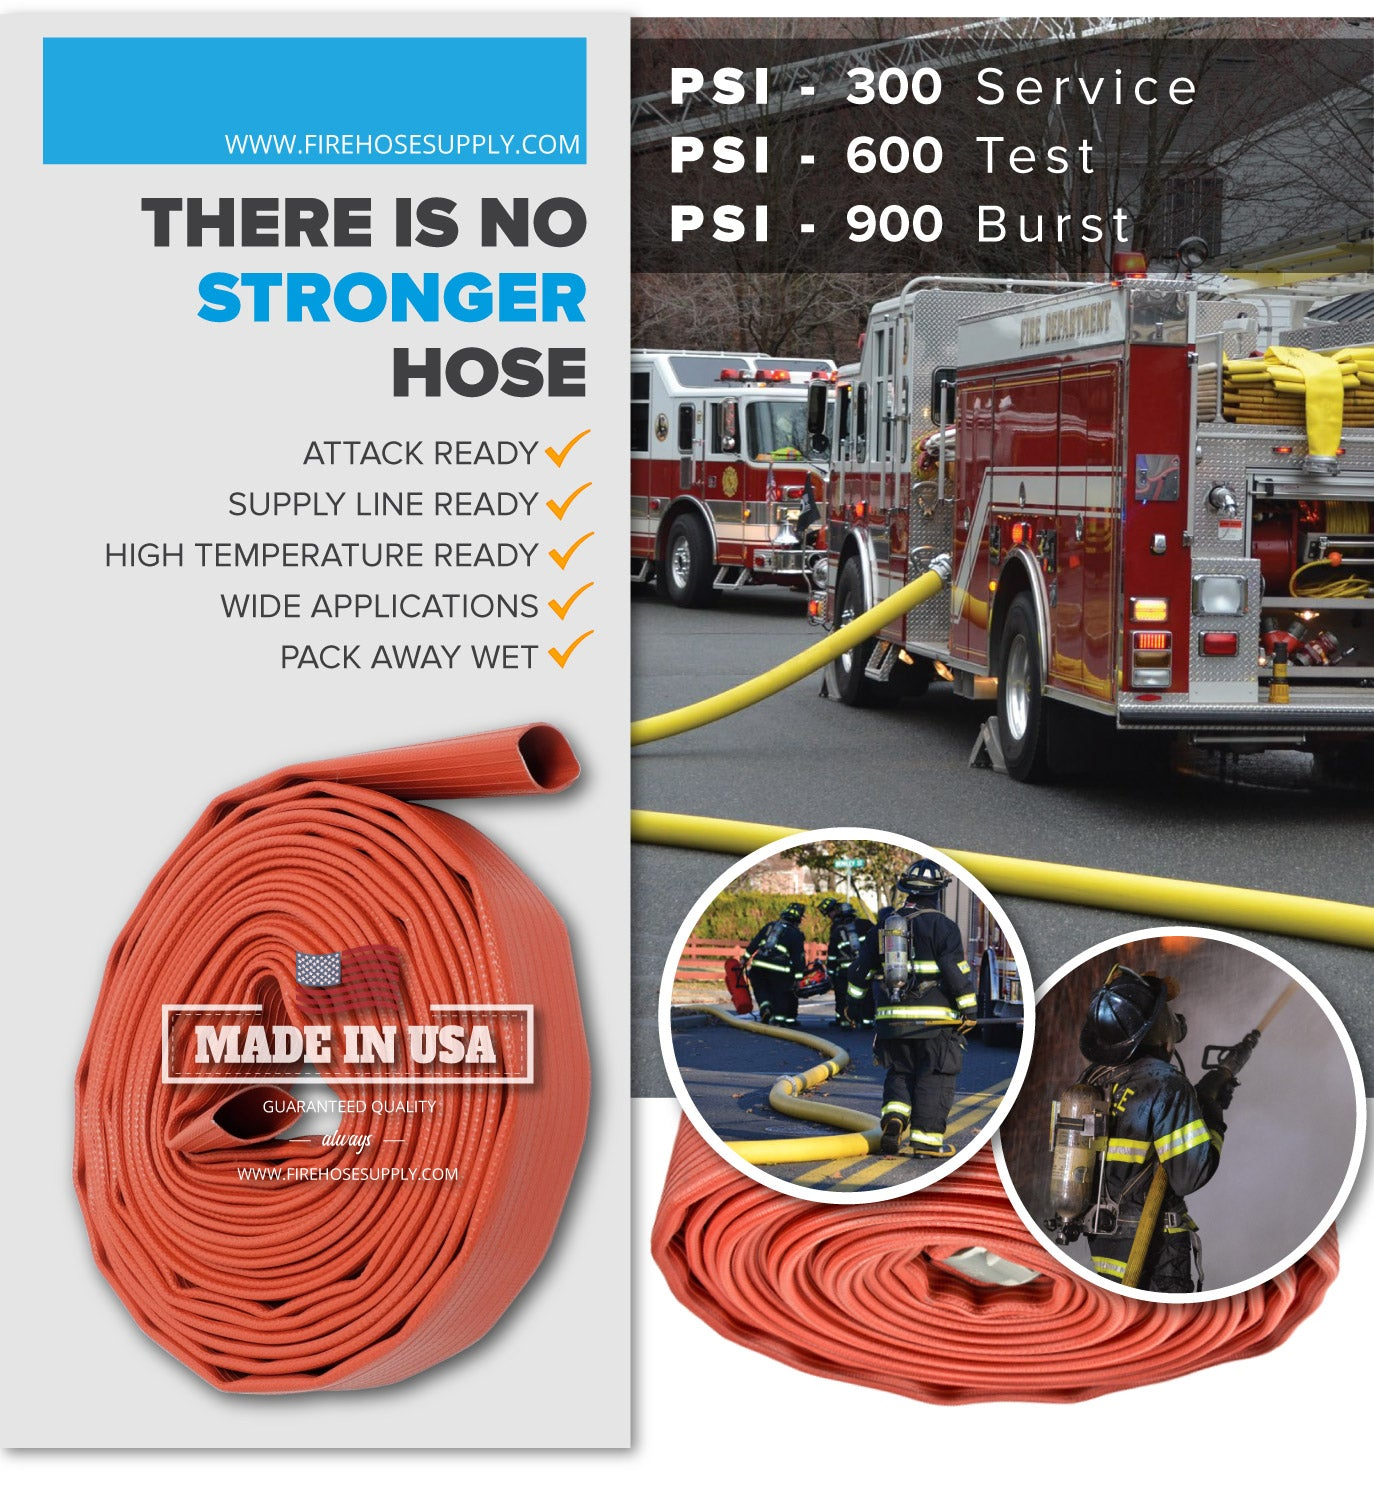 1.5 Inch Rubber Fire Hose Material Only Supply And Attack Ready Firefighter Red 600 PSI Test